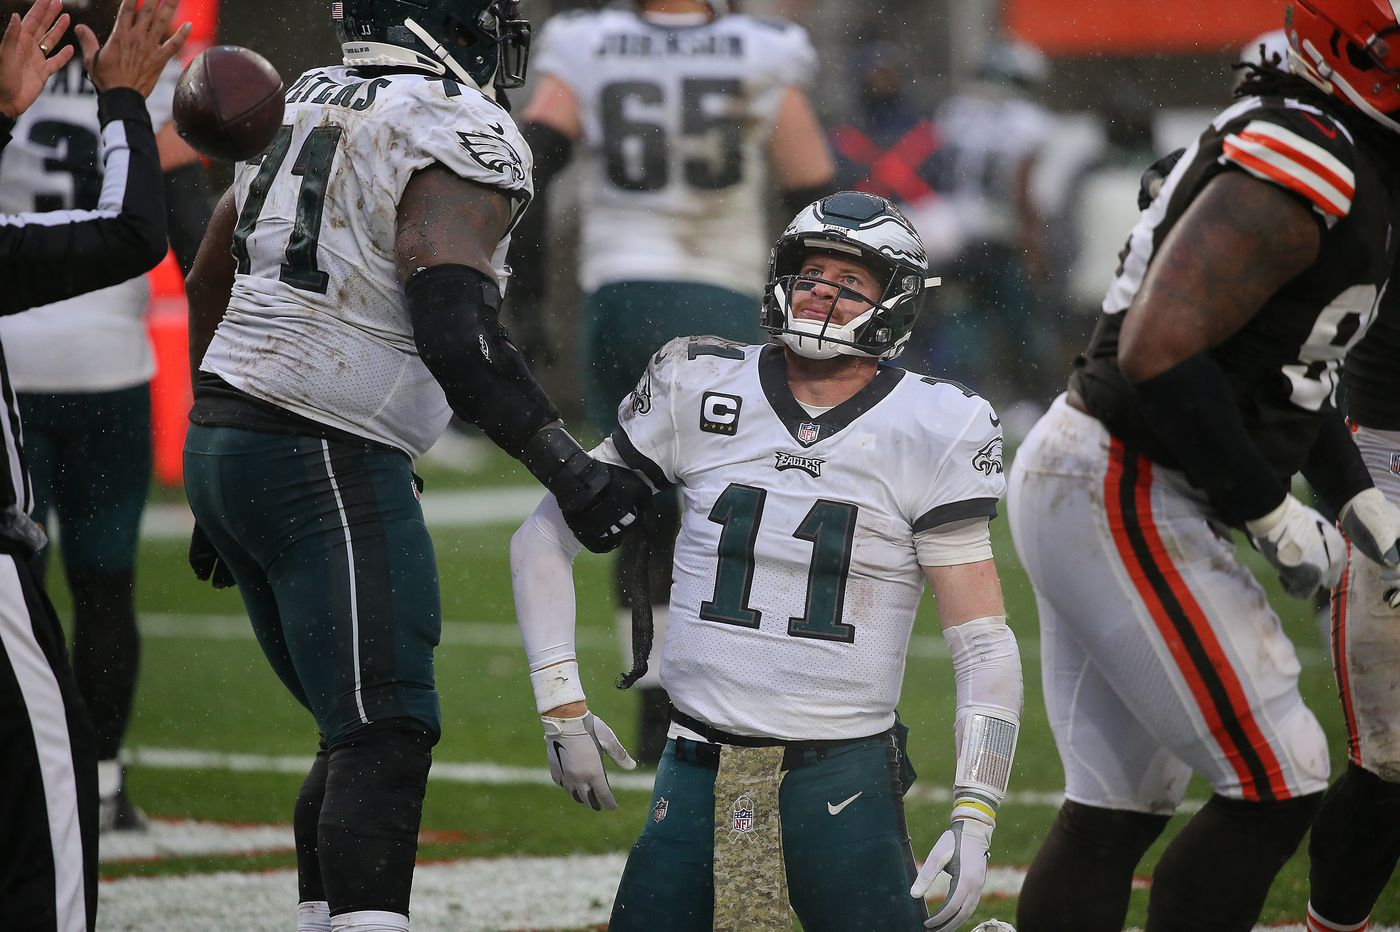 Eagles, Carson Wentz toss a decent defensive effort into Lake Erie, spiral downward in 22-17 loss to Browns